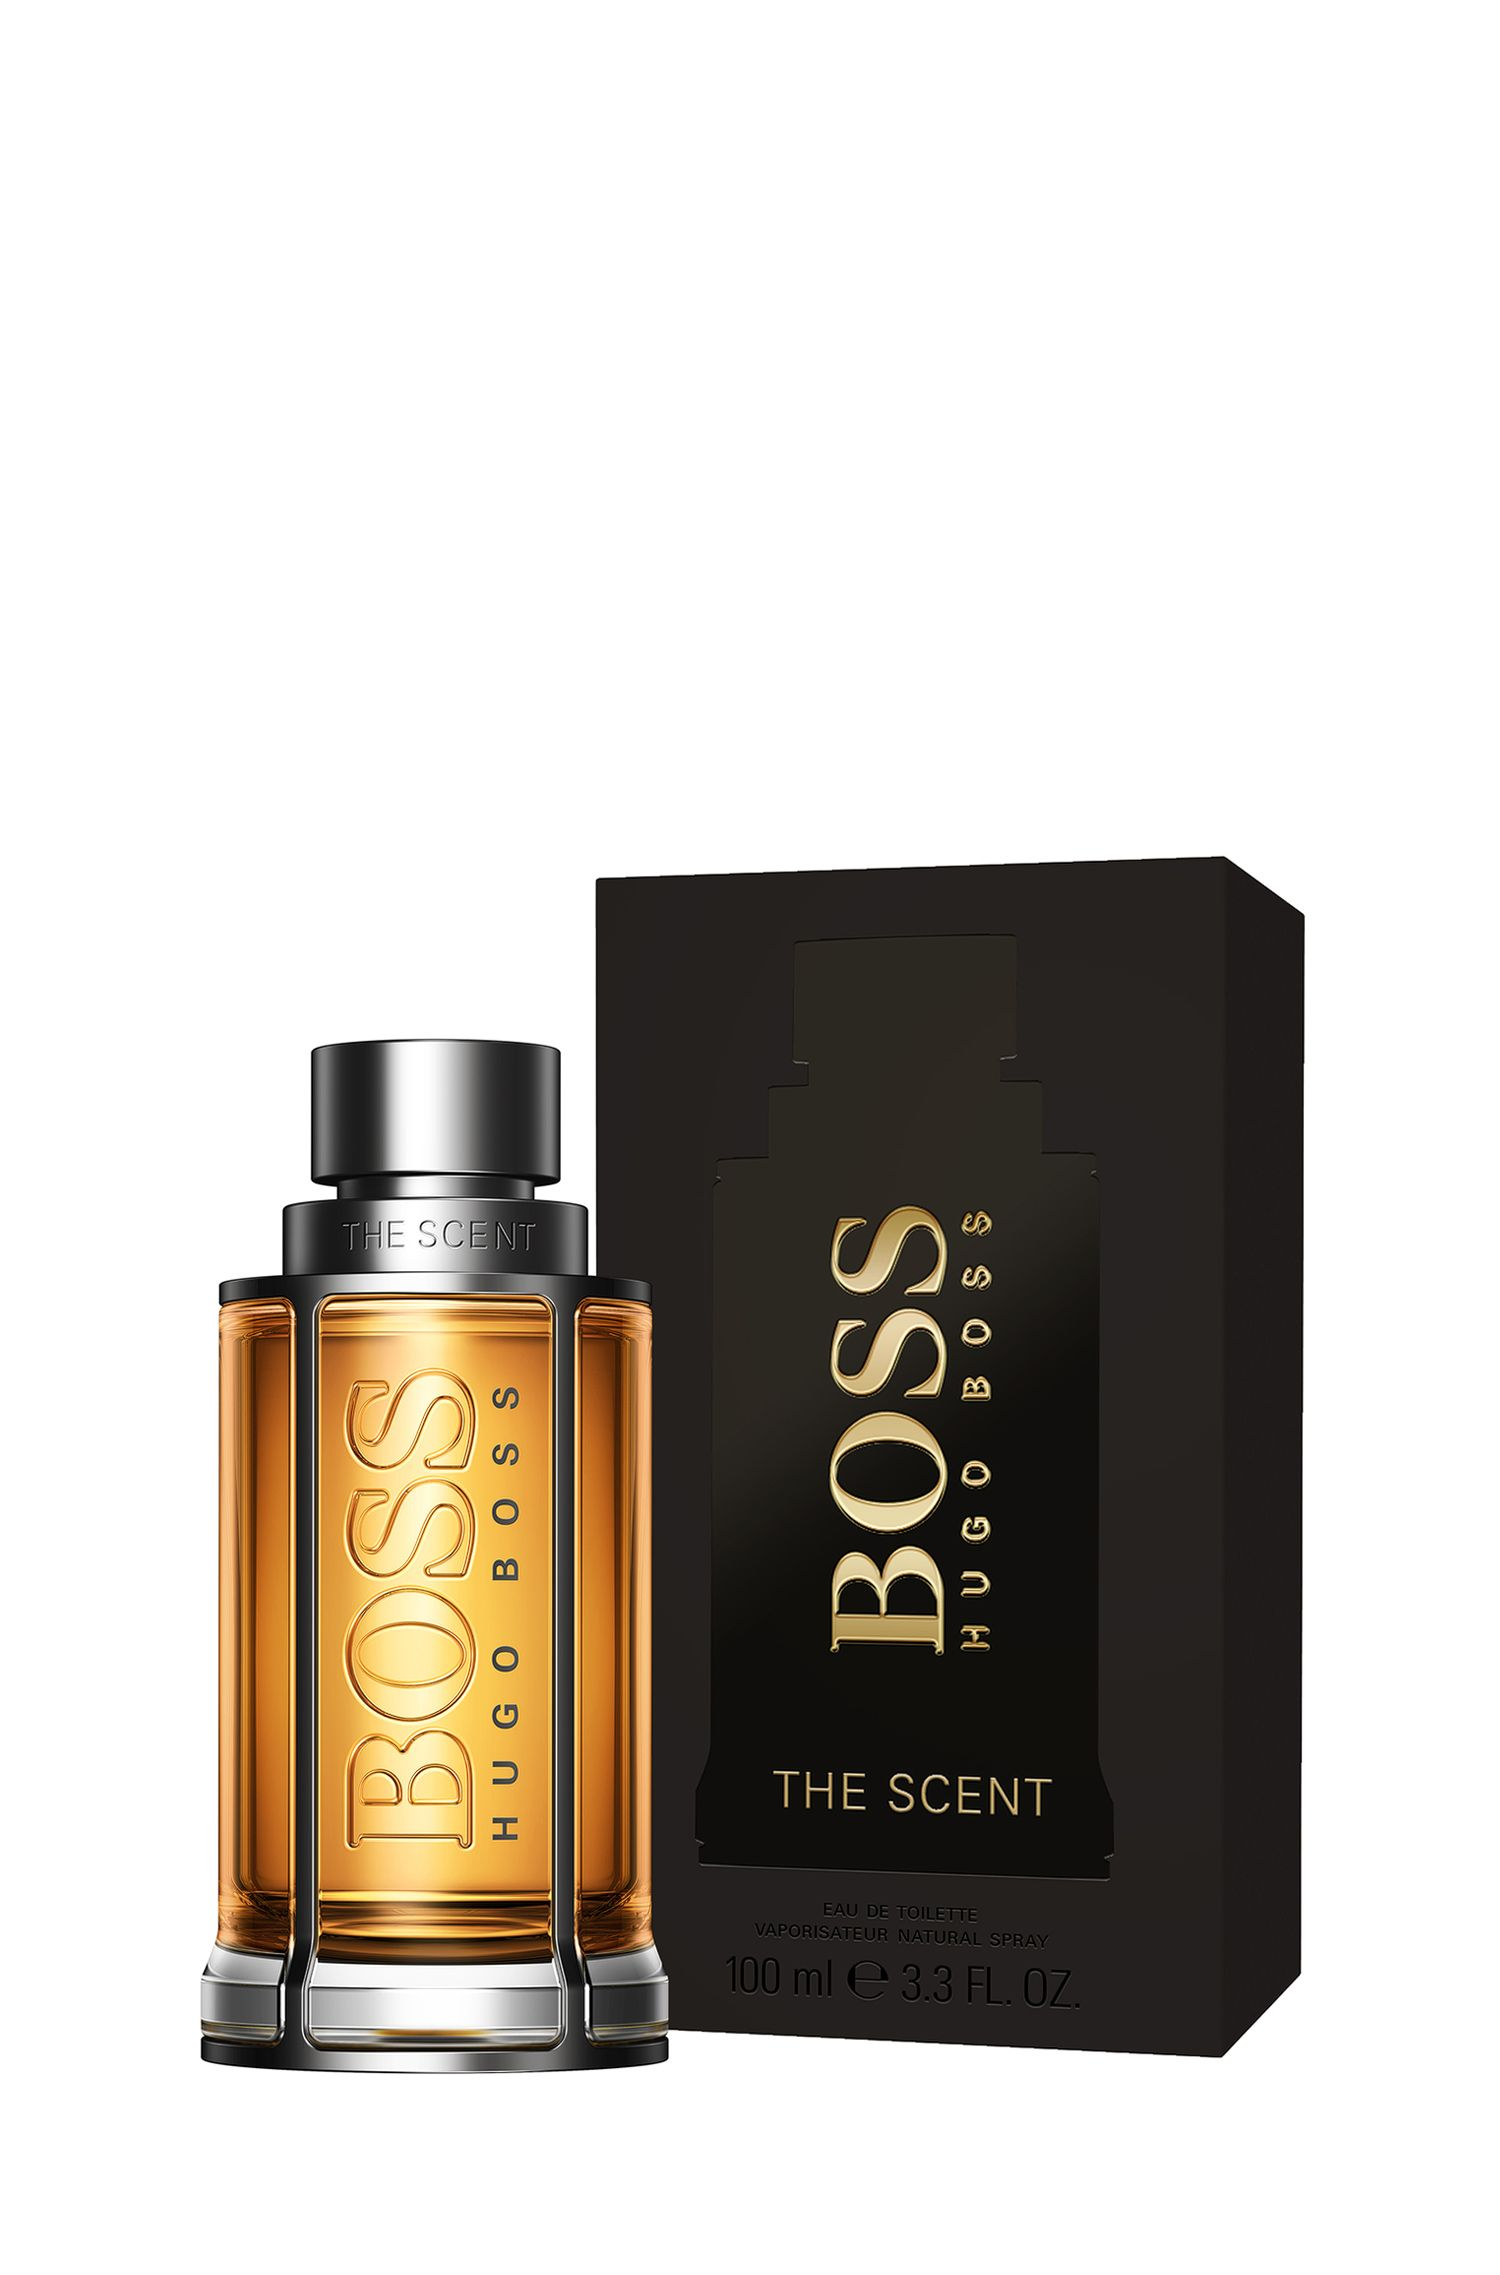 3.3 fl. oz. (100 mL) Eau de Toilette | BOSS The Scent, Assorted-Pre-Pack